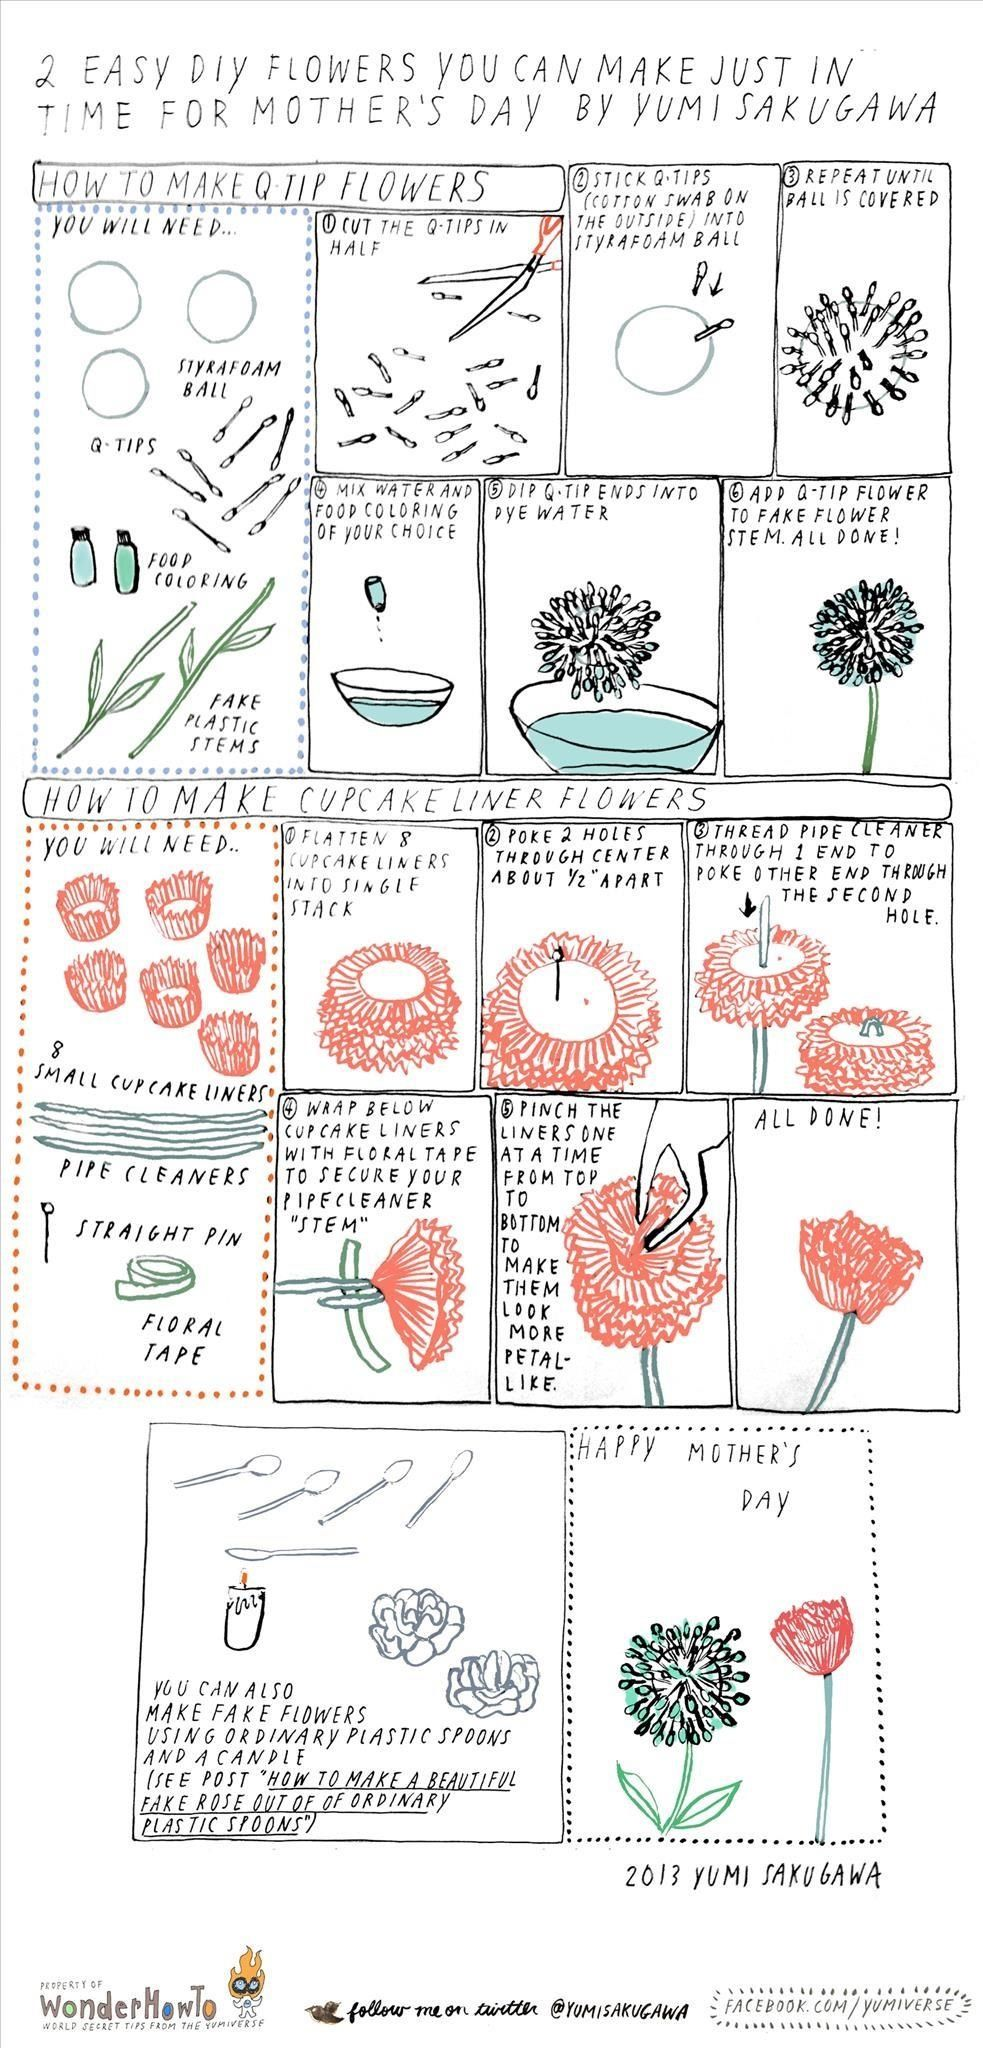 How to Make Your Mom Flowers Using Q-Tips or Cupcake Liners, Just in Time  for Mother's Day